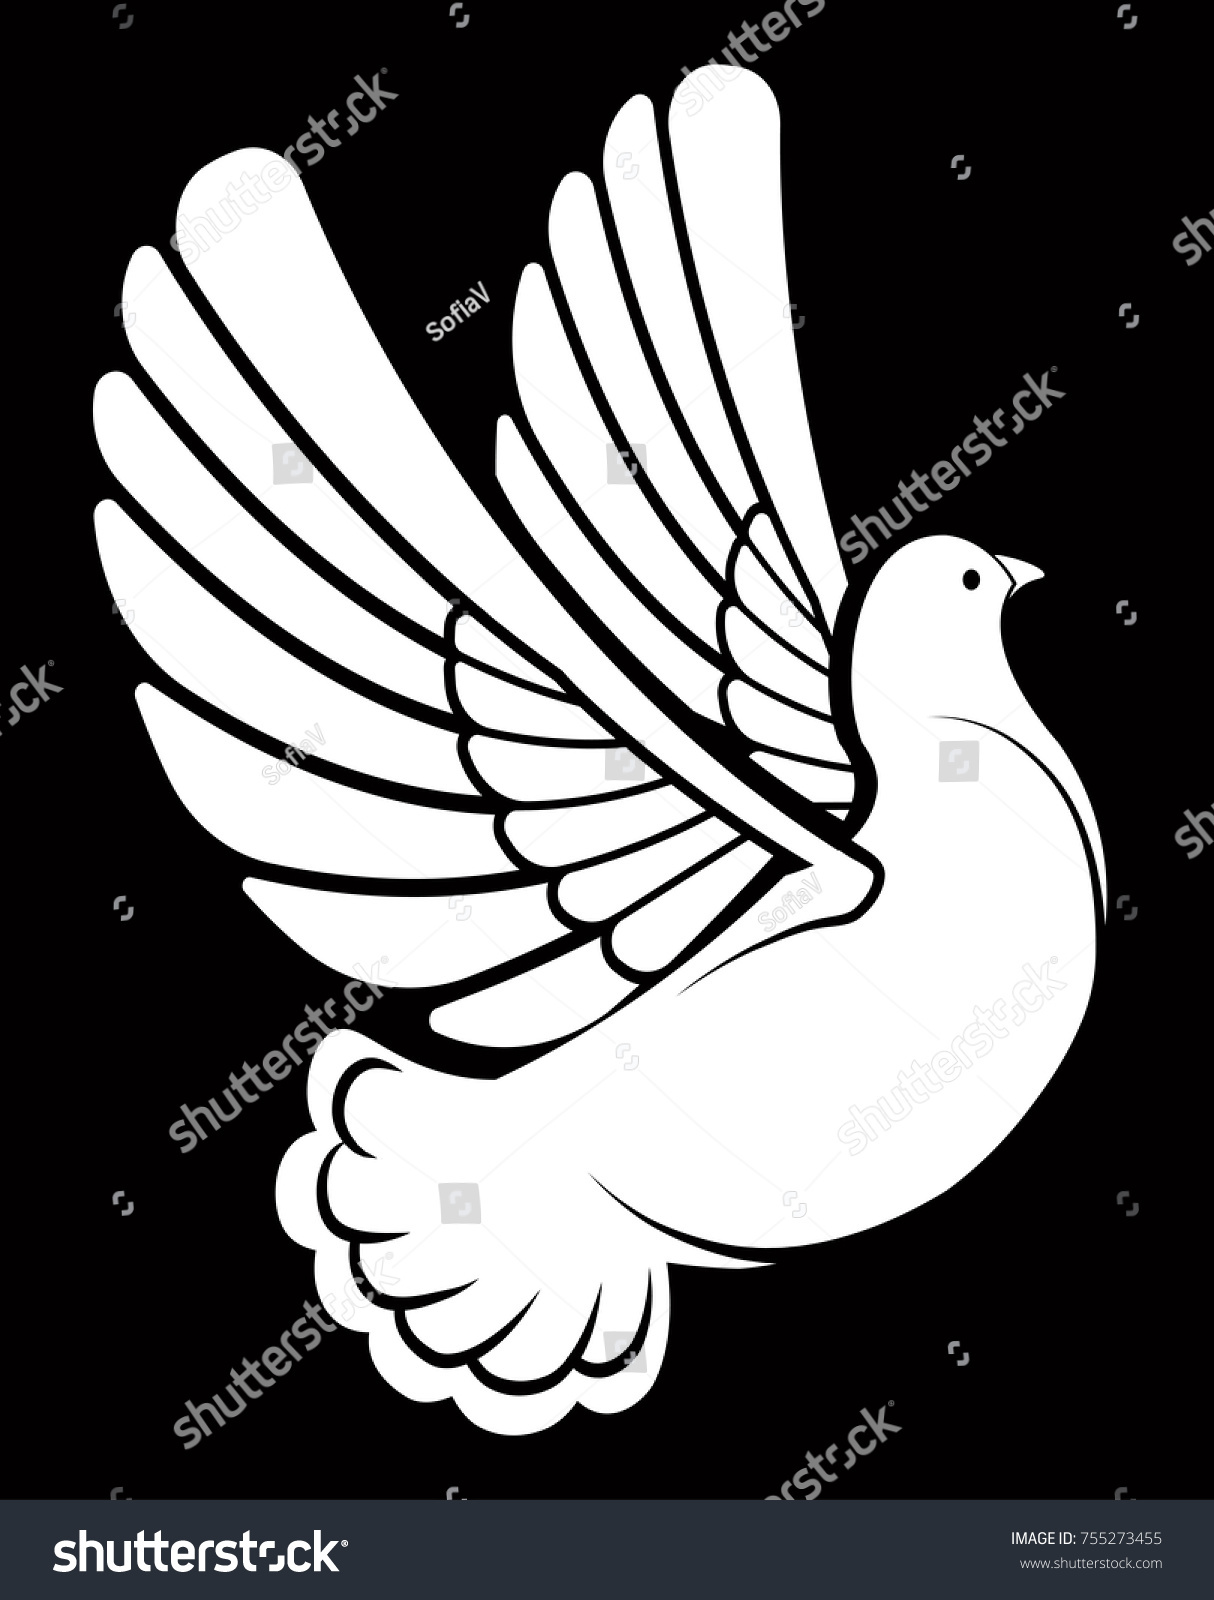 Pigeon dove white bird vector logo stock vector 755273455 pigeon or dove white bird vector logo template or isolated symbol icon of peace pronofoot35fo Image collections